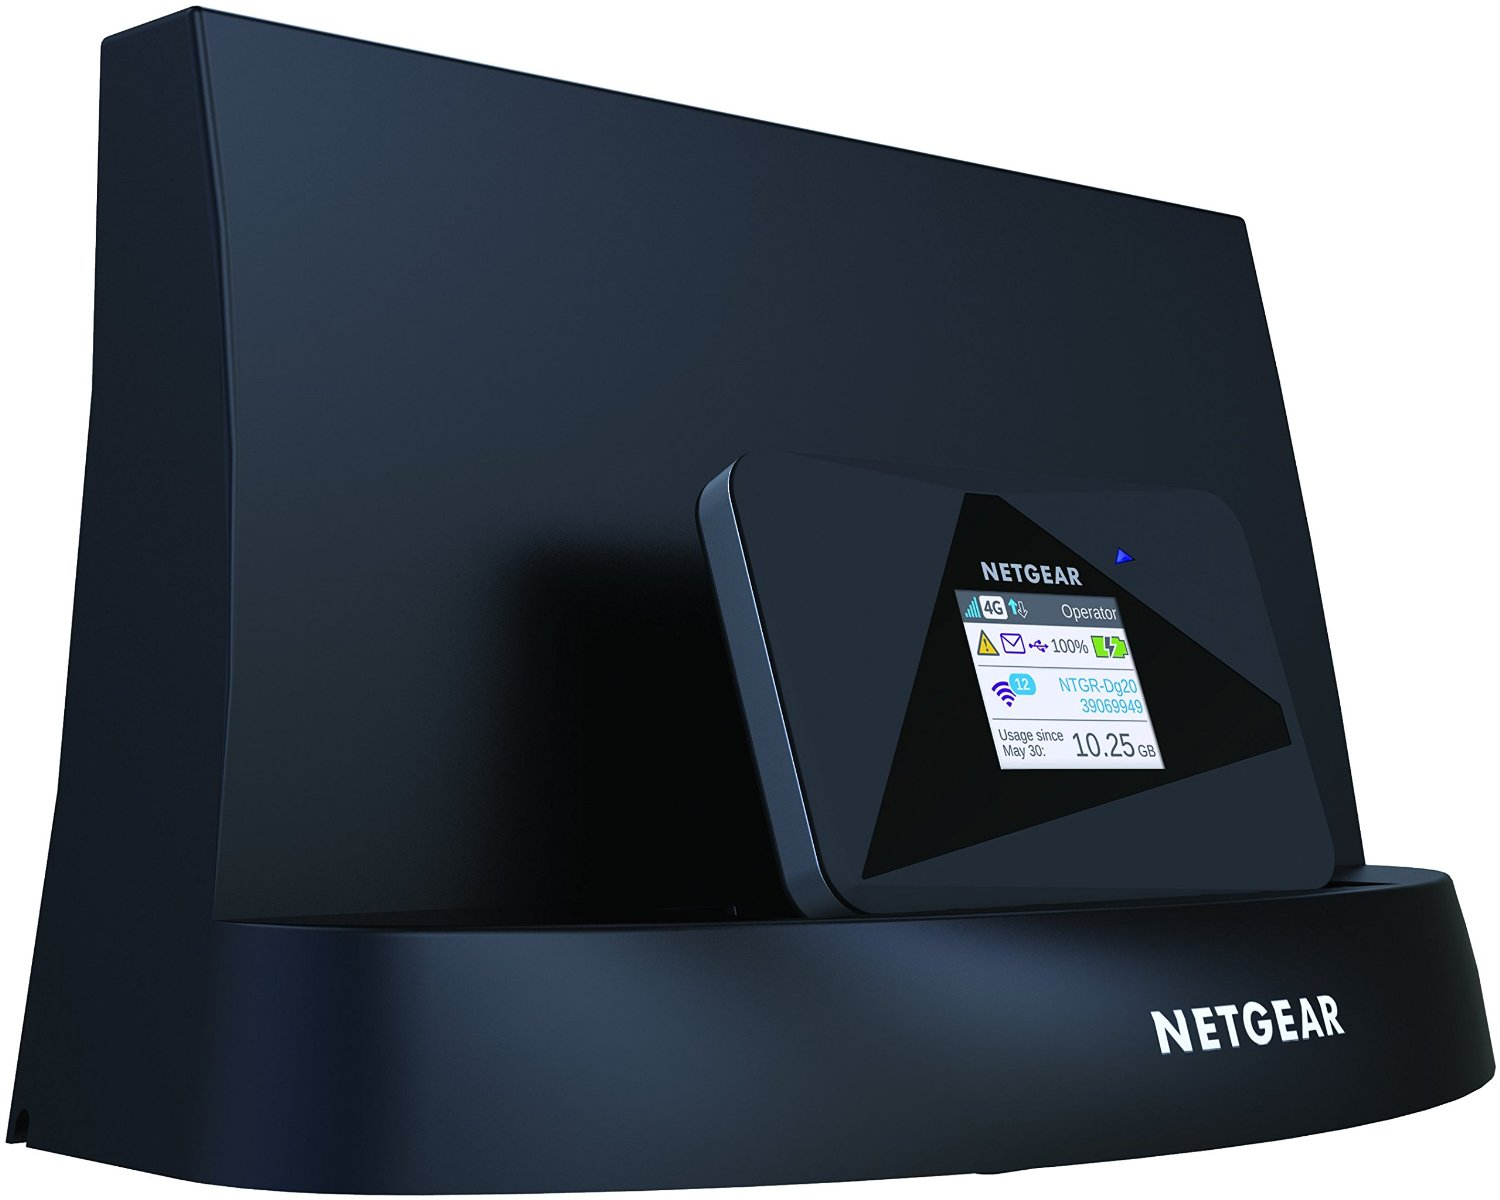 NETGEAR 5PT 11N WIFI WALL MOUNT AP, WN370